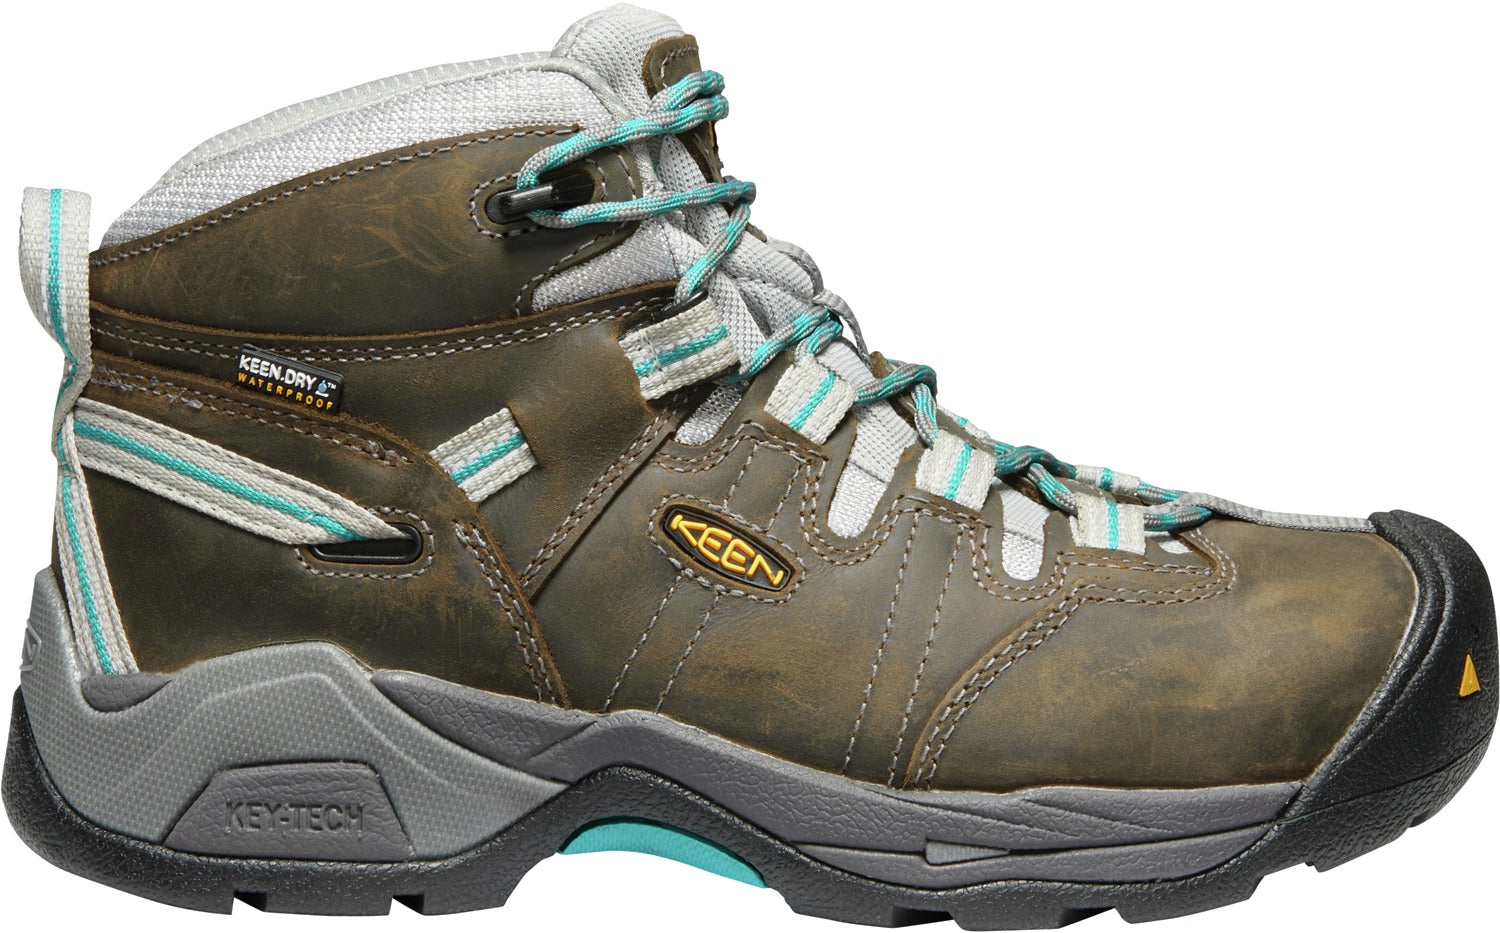 'Keen' Women's Detroit XT Mid Steel Toe WP Hiker - Gargoyle Grey / Lake Blue / Brown